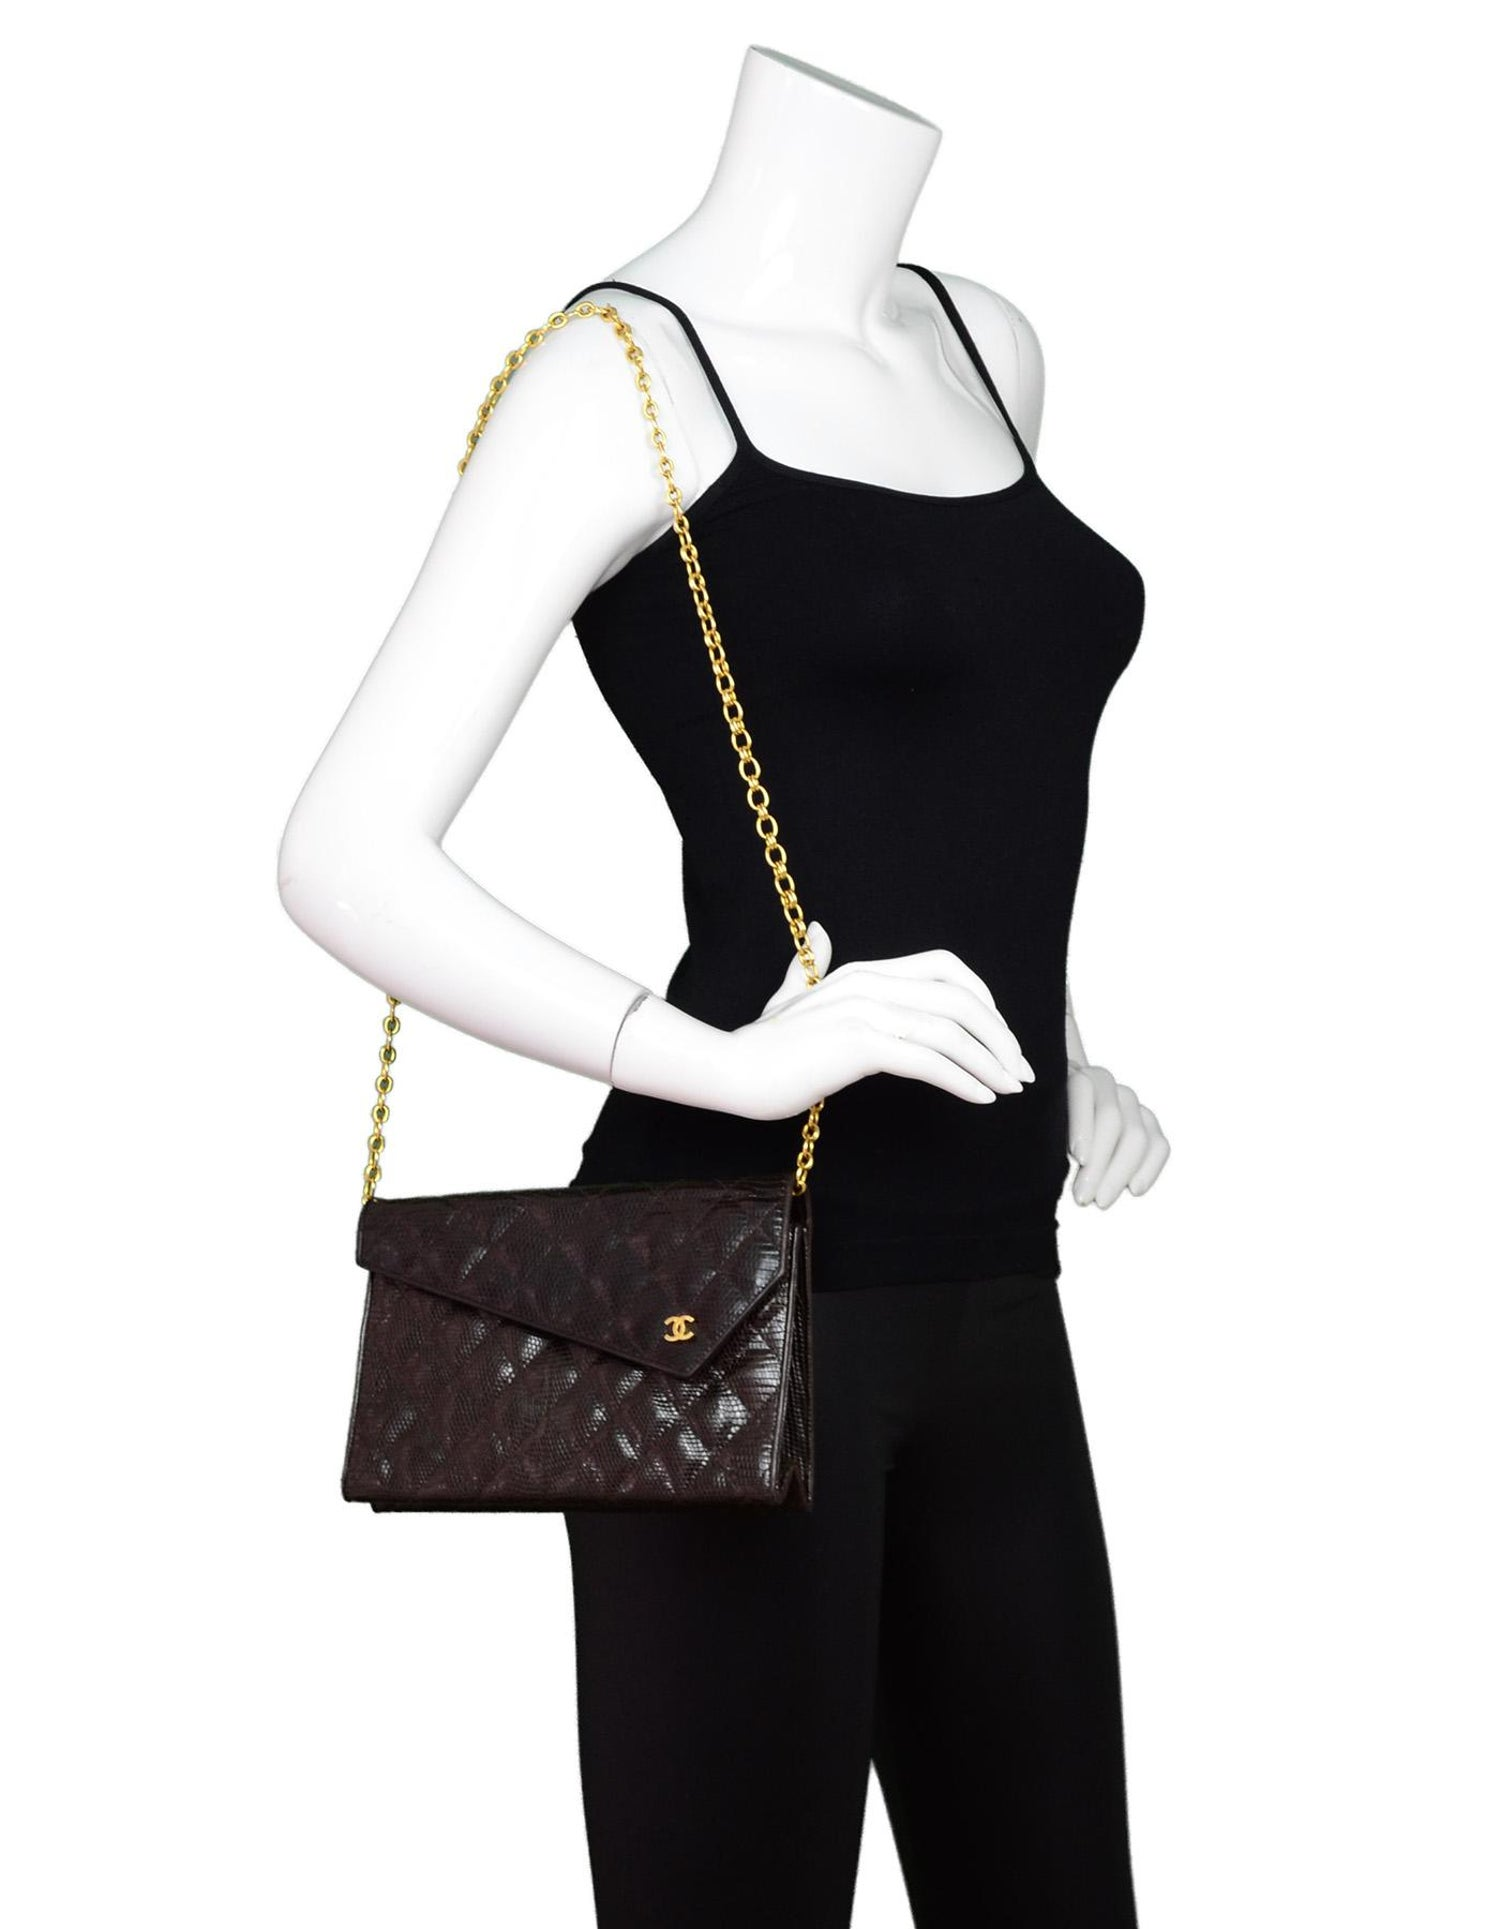 0495ba419634a5 Chanel Brown Lizard Quilted Clutch/ Shoulder Bag For Sale at 1stdibs